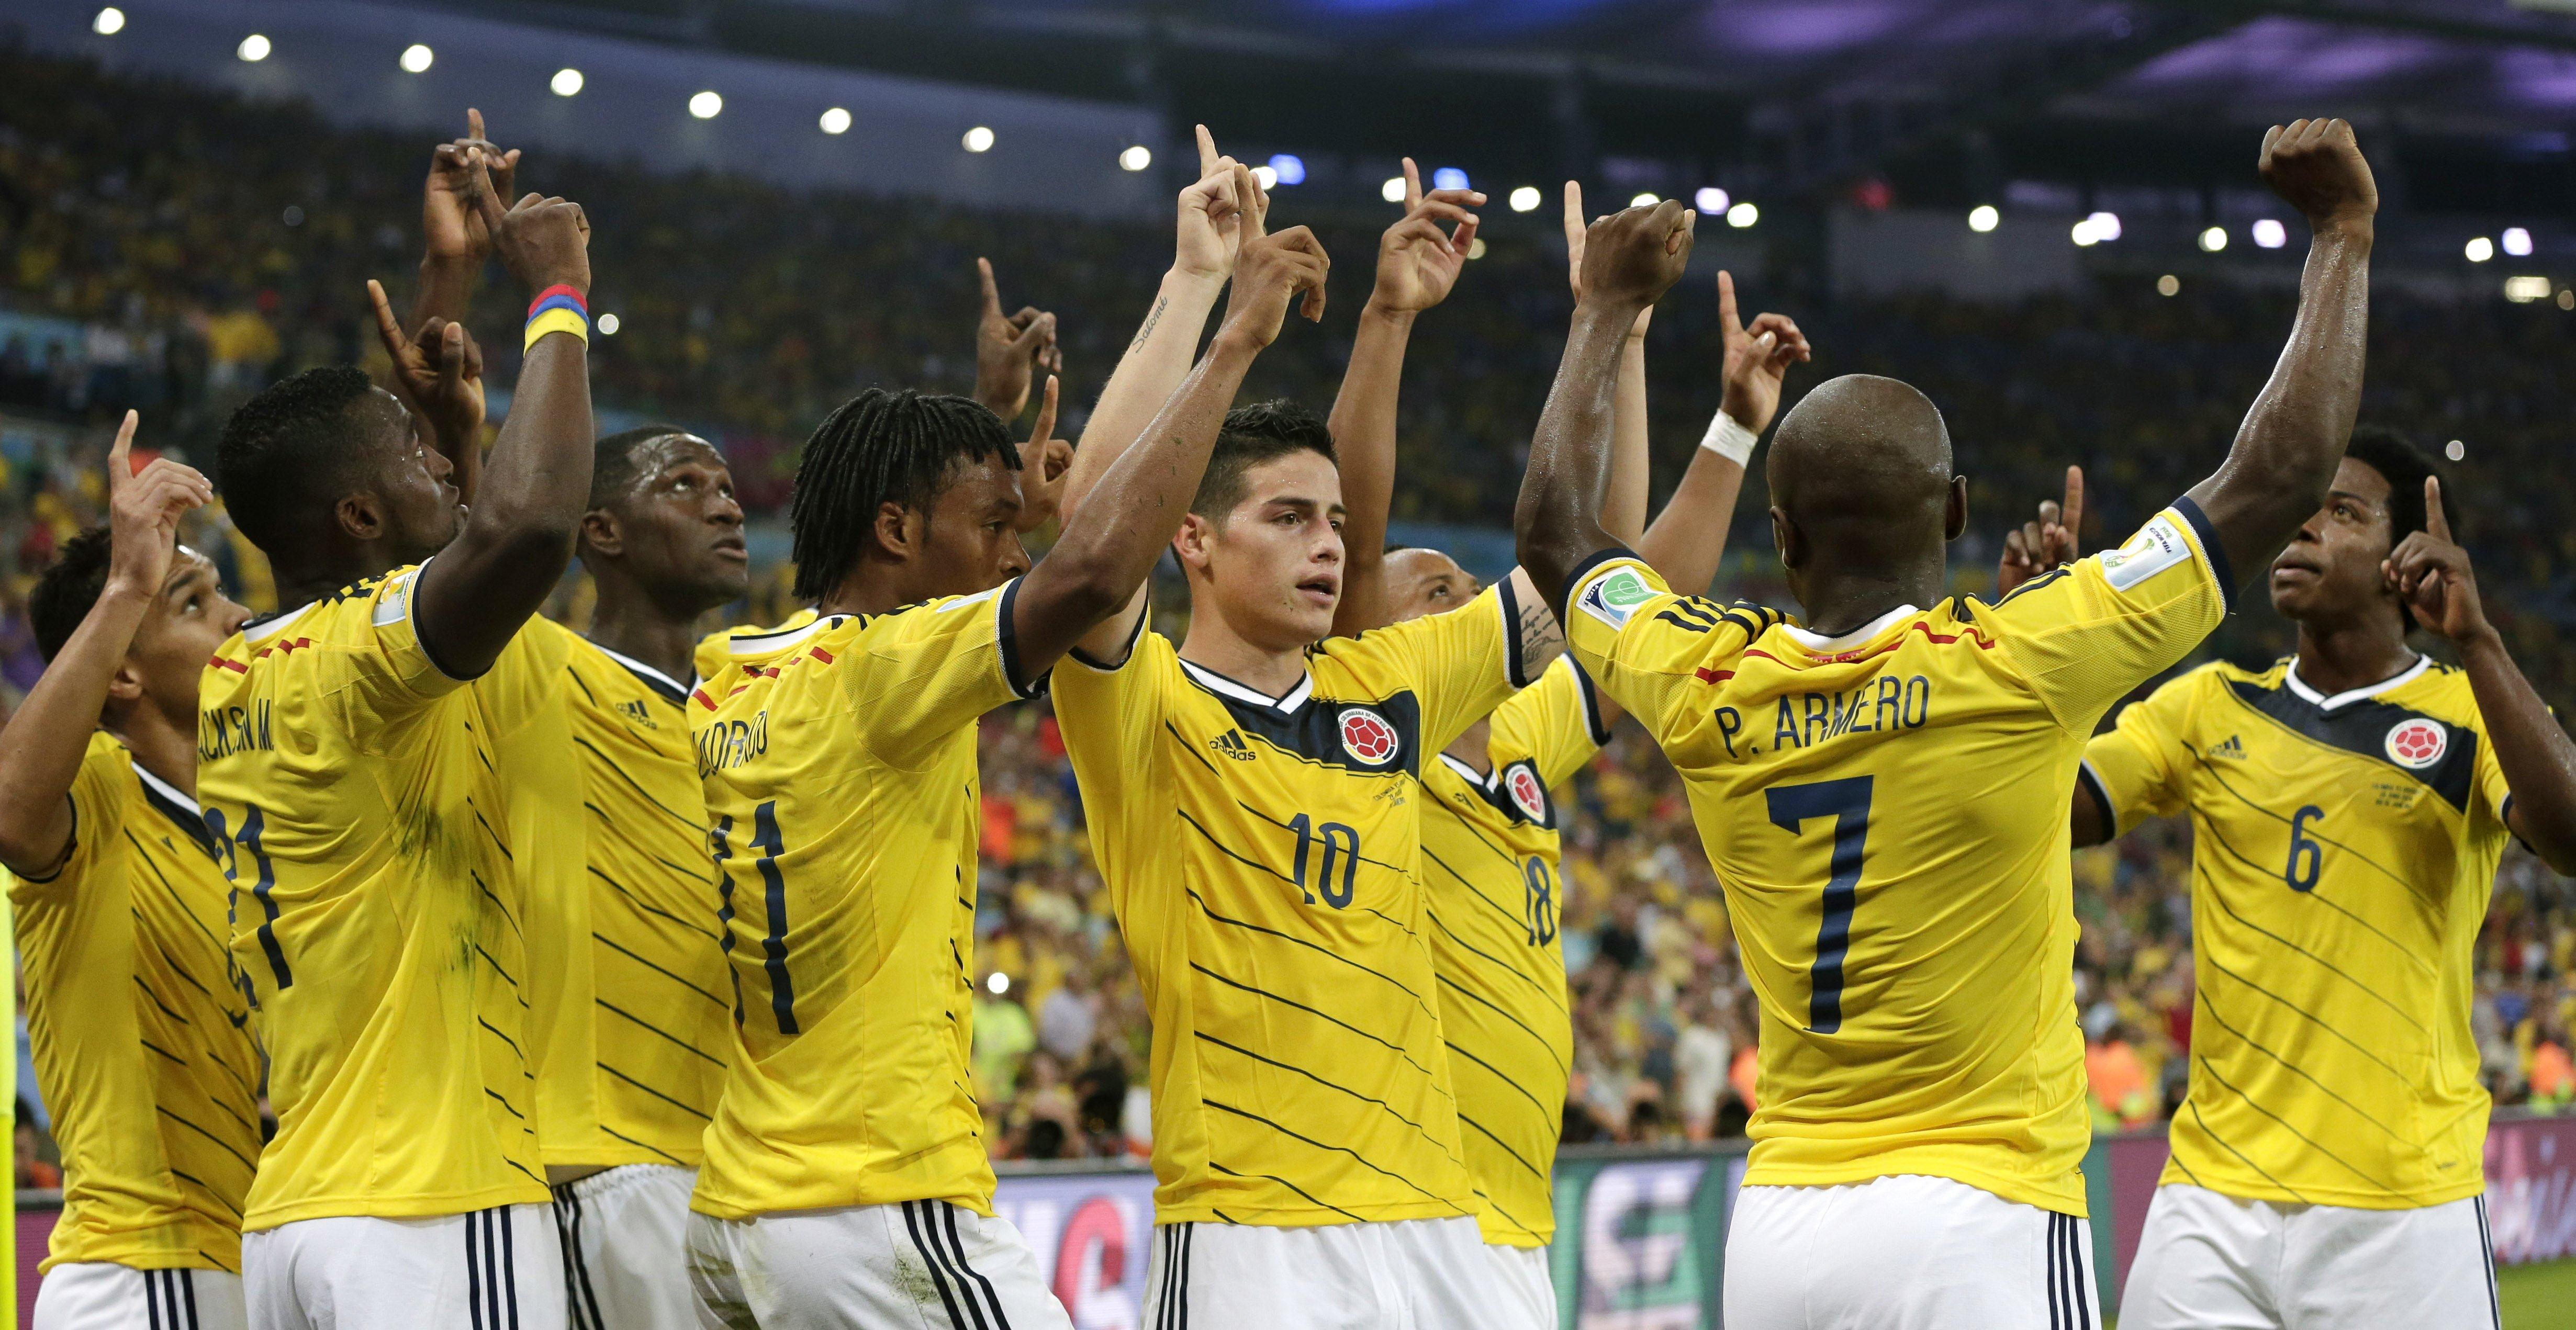 Seleccion Colombia: Why You Should Root For Colombia In The World Cup